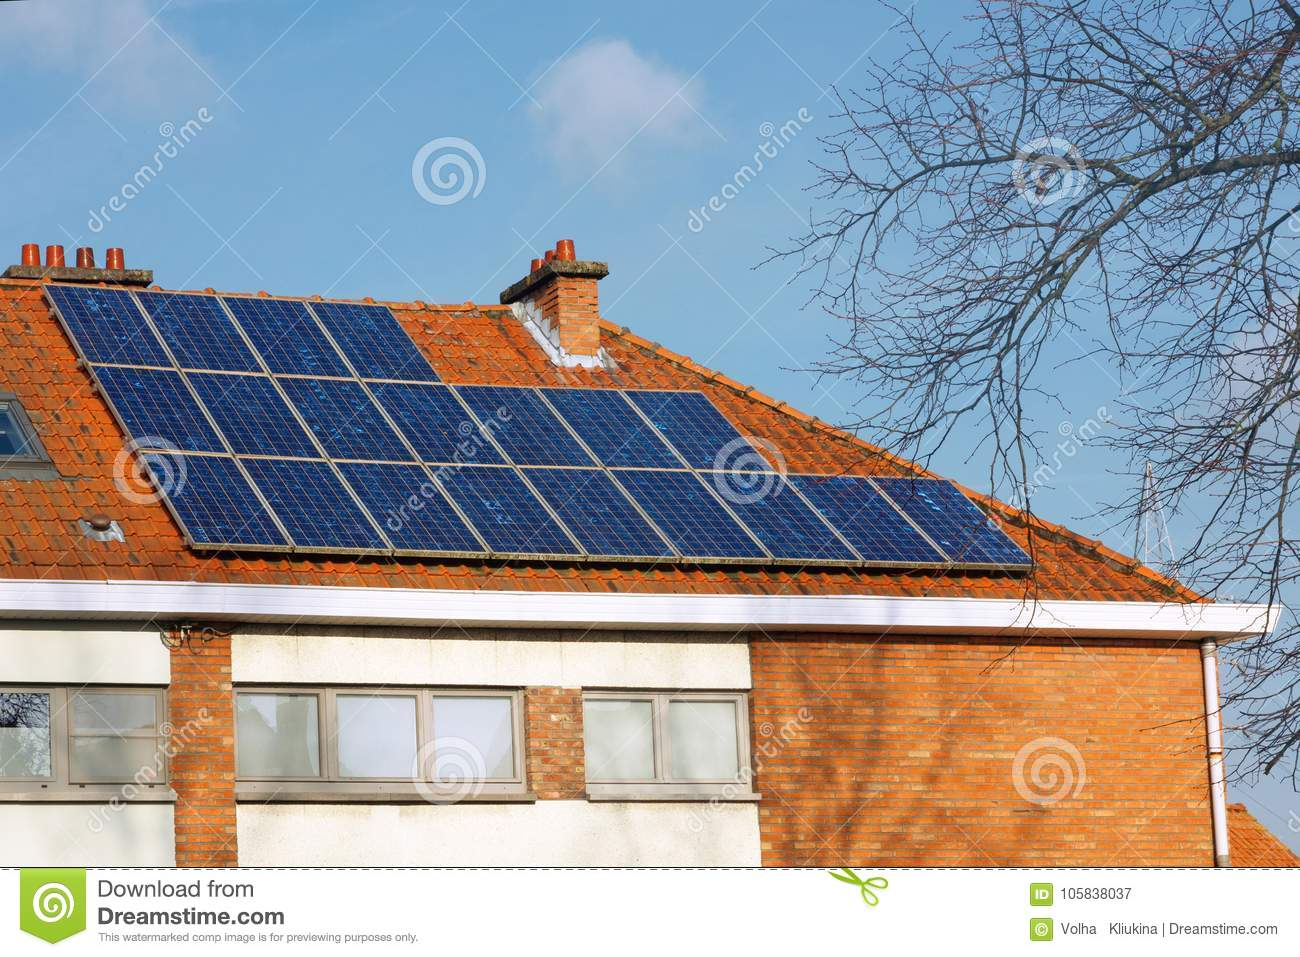 Solar Panels On A Tiled Roof Stock Image - Image of generator ...